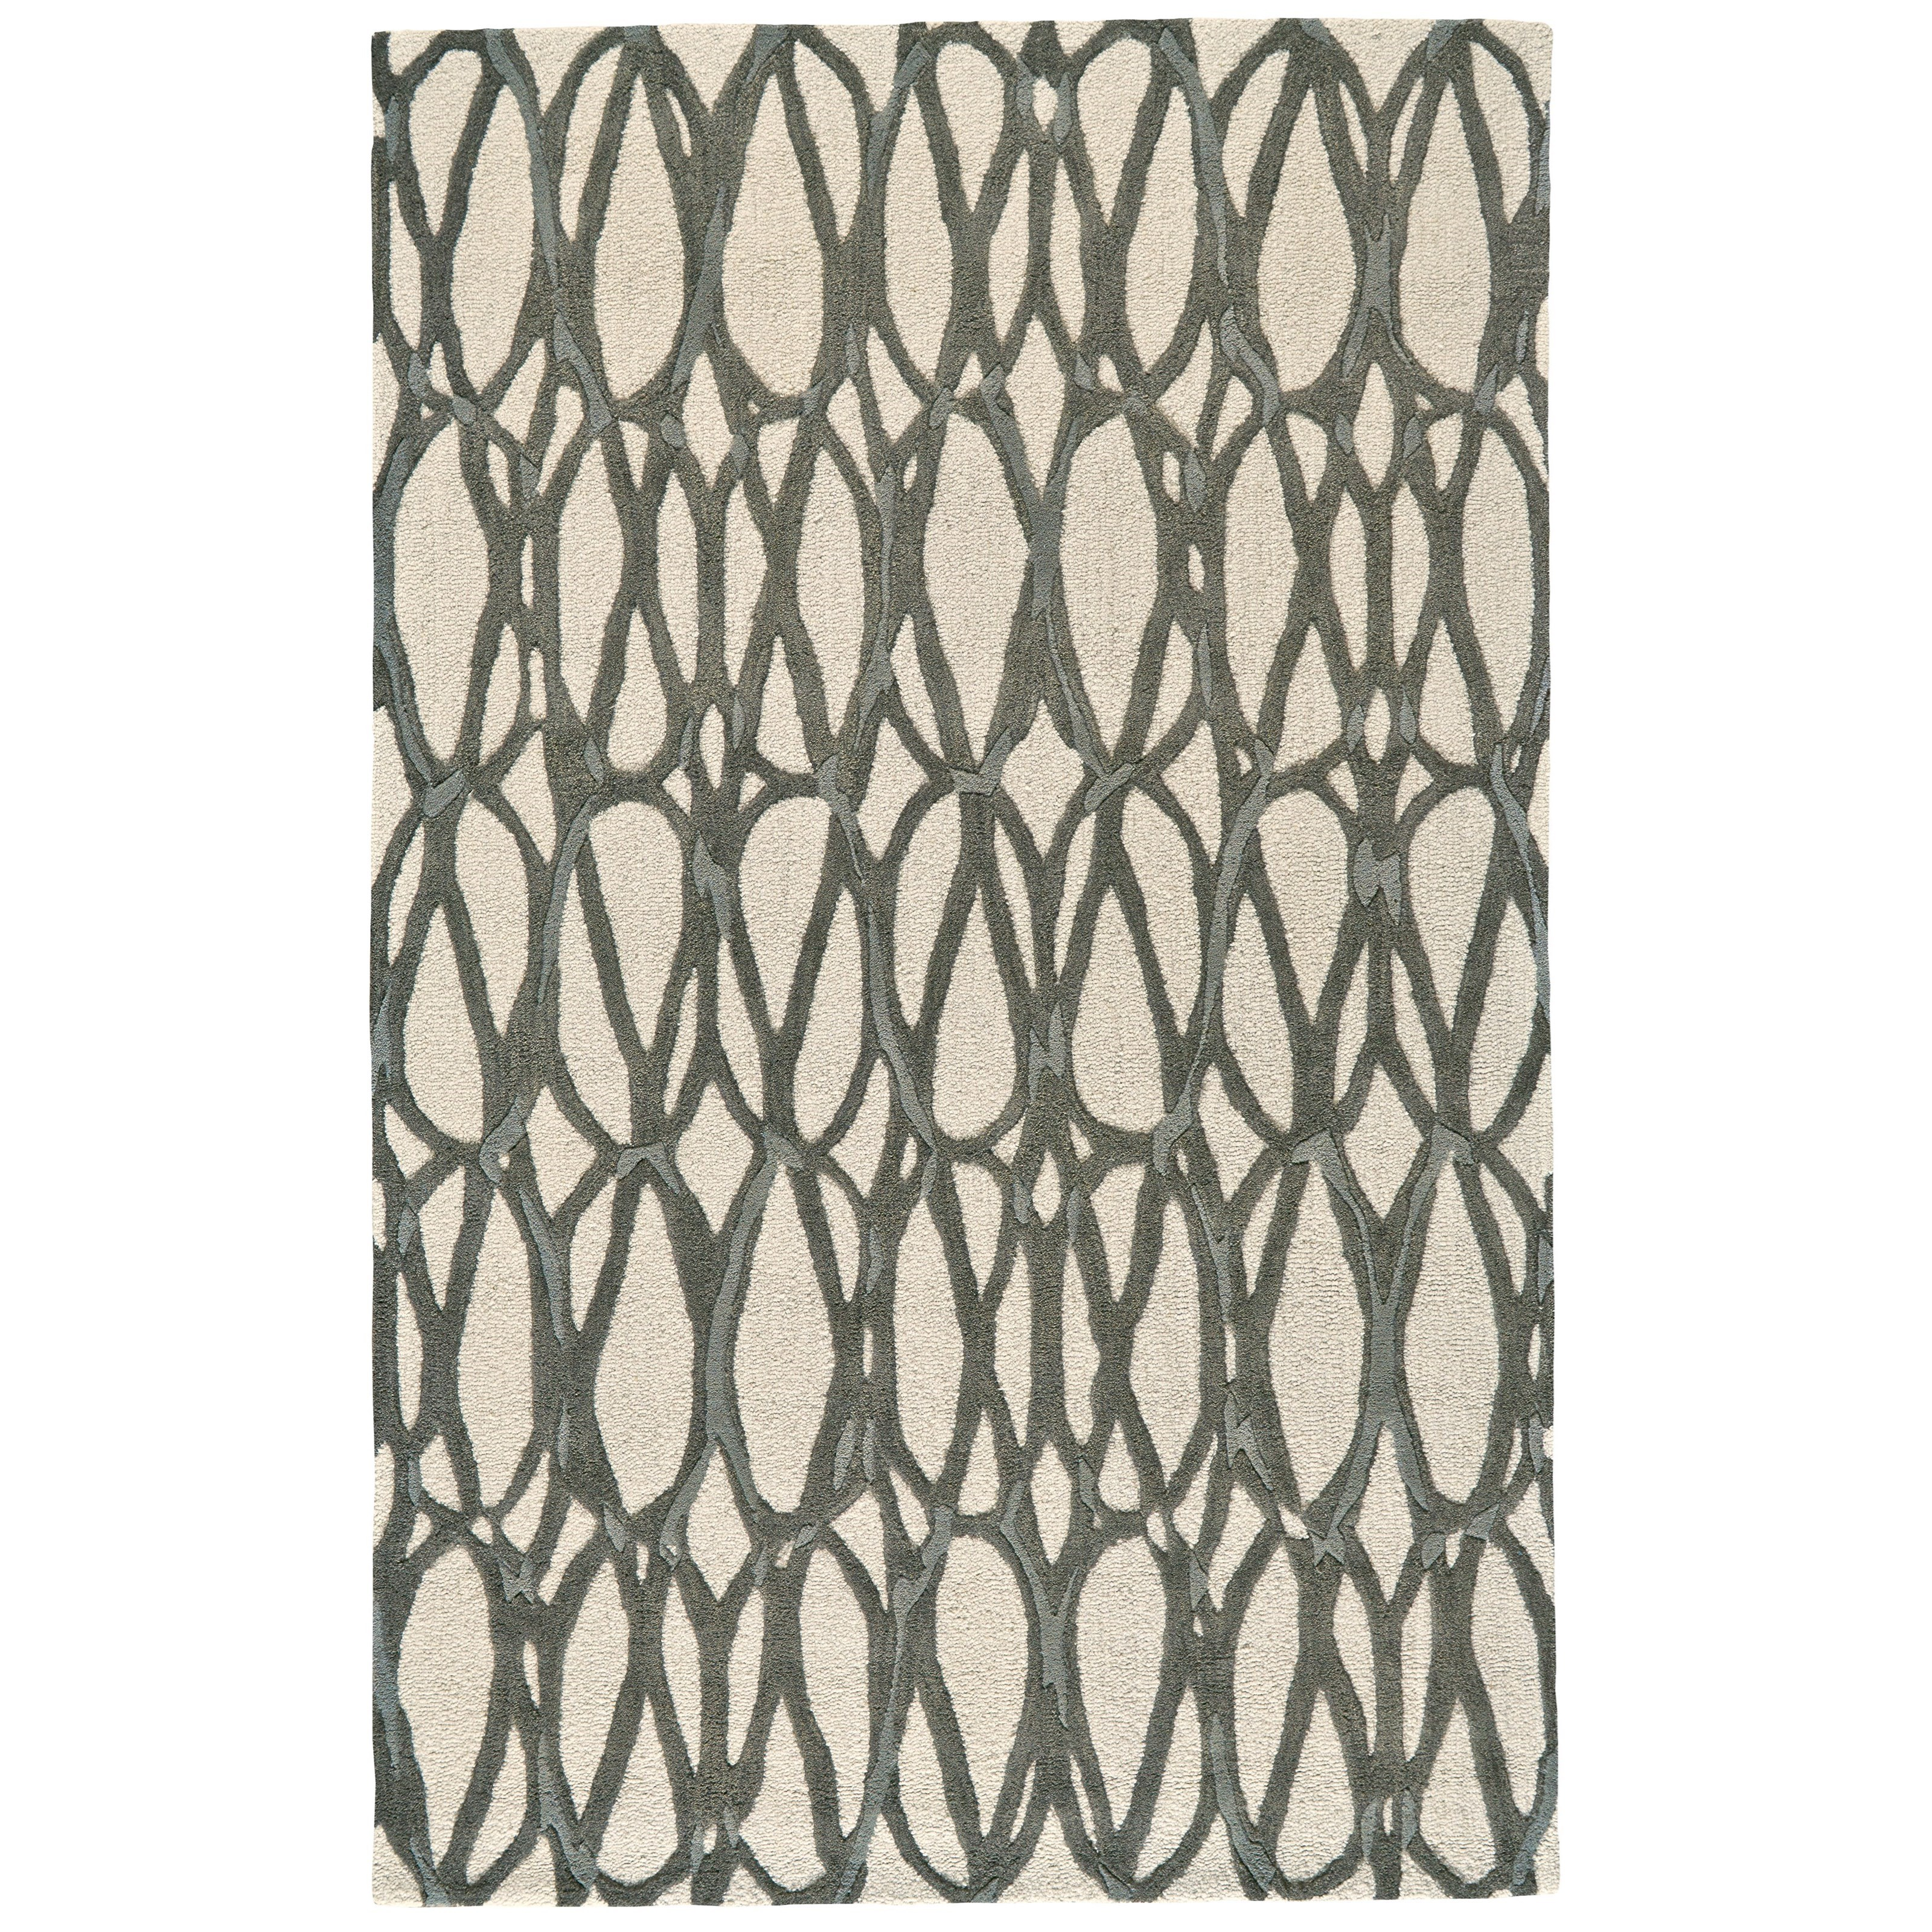 Ella Titanium 8' X 11' Area Rug by Feizy Rugs at Jacksonville Furniture Mart